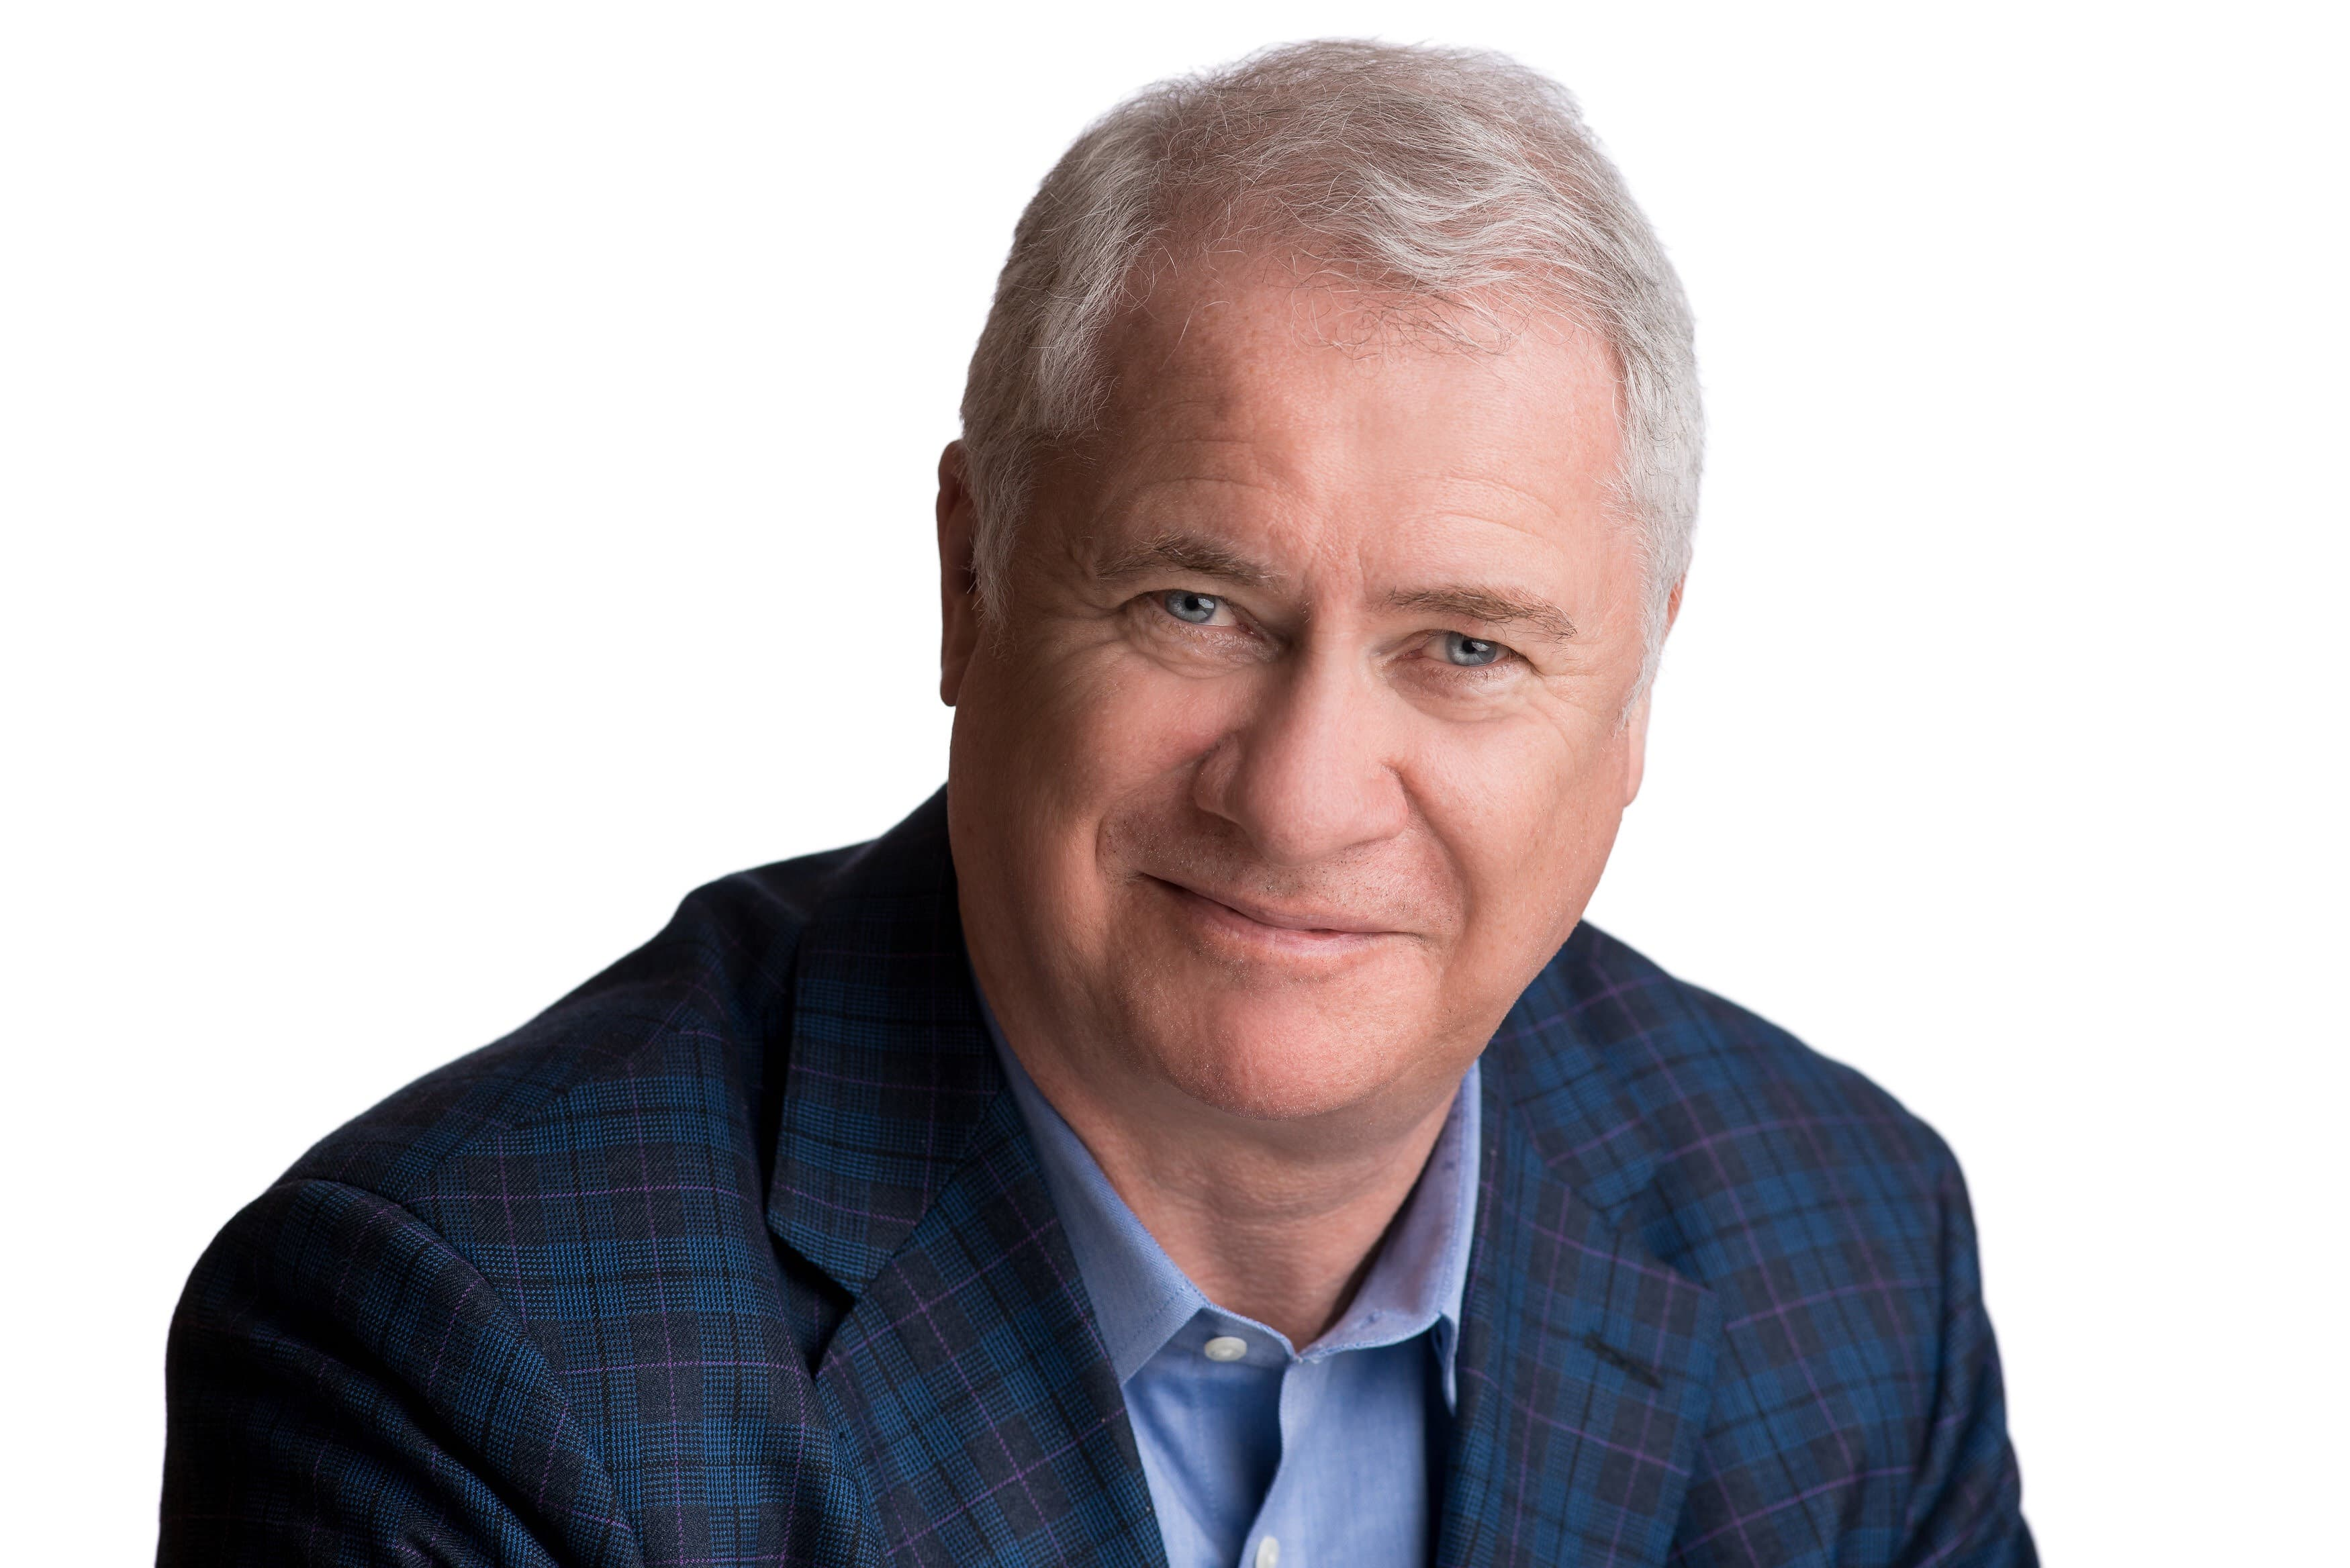 CNLP 206: Les McKeown on Visionaries, Operators and Processors and How Each Is Necessary In Thriving Organizations